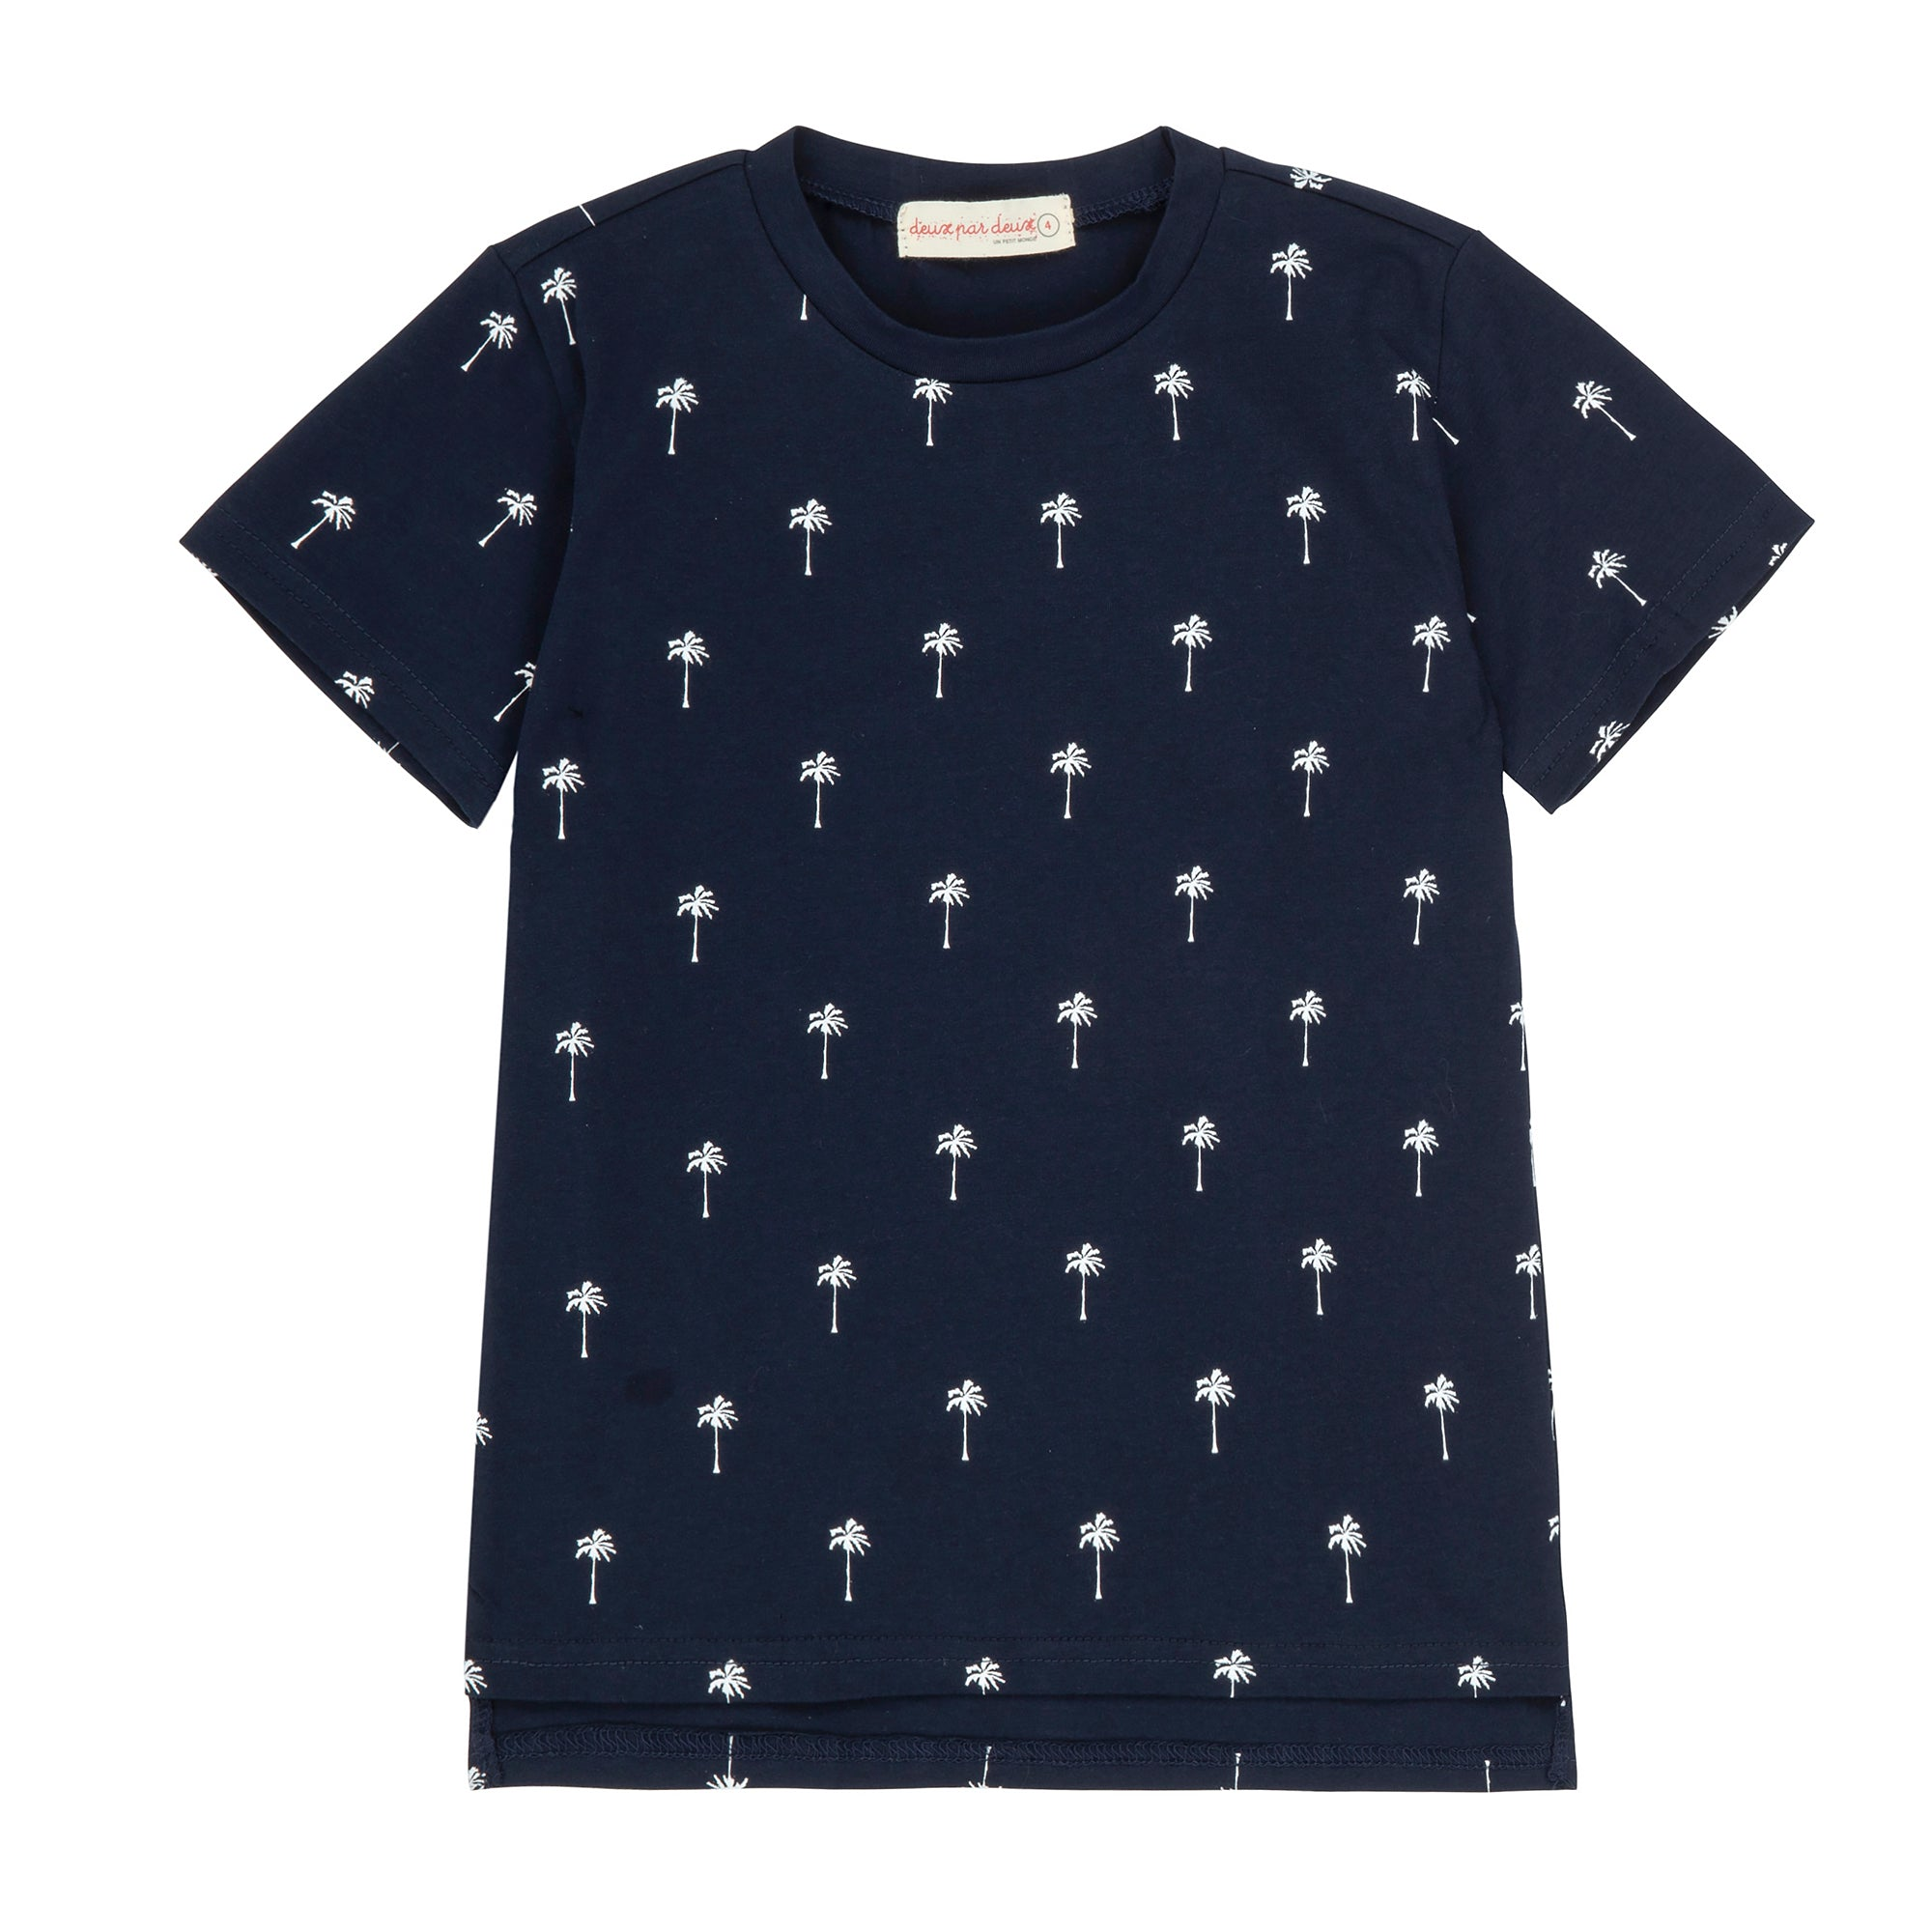 Boys Navy T-Shirt With Palm Tree Print